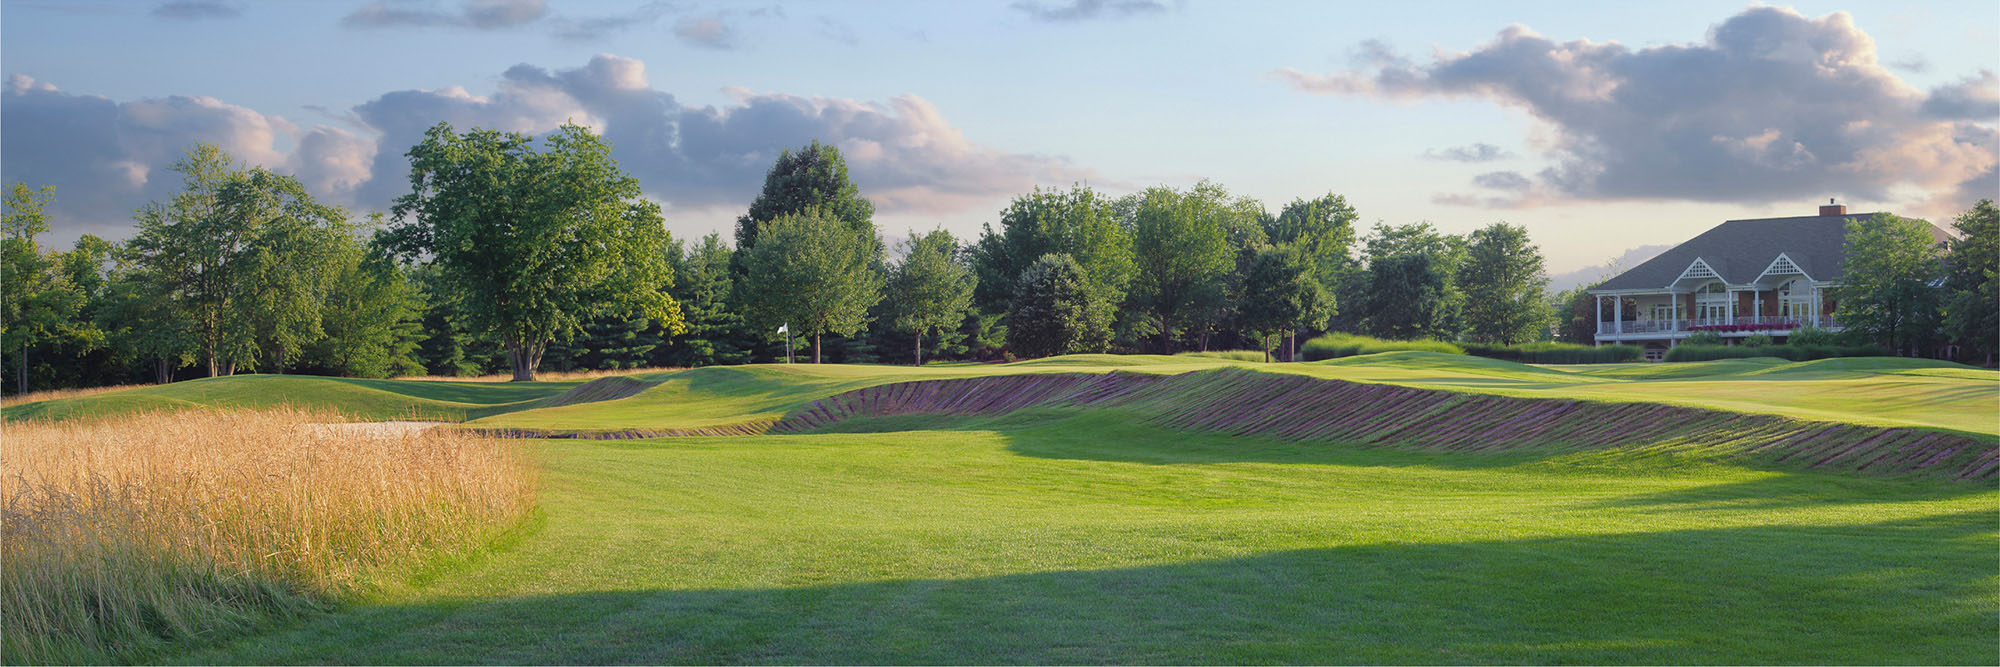 Golf Course Image - Heritage Club No. 9